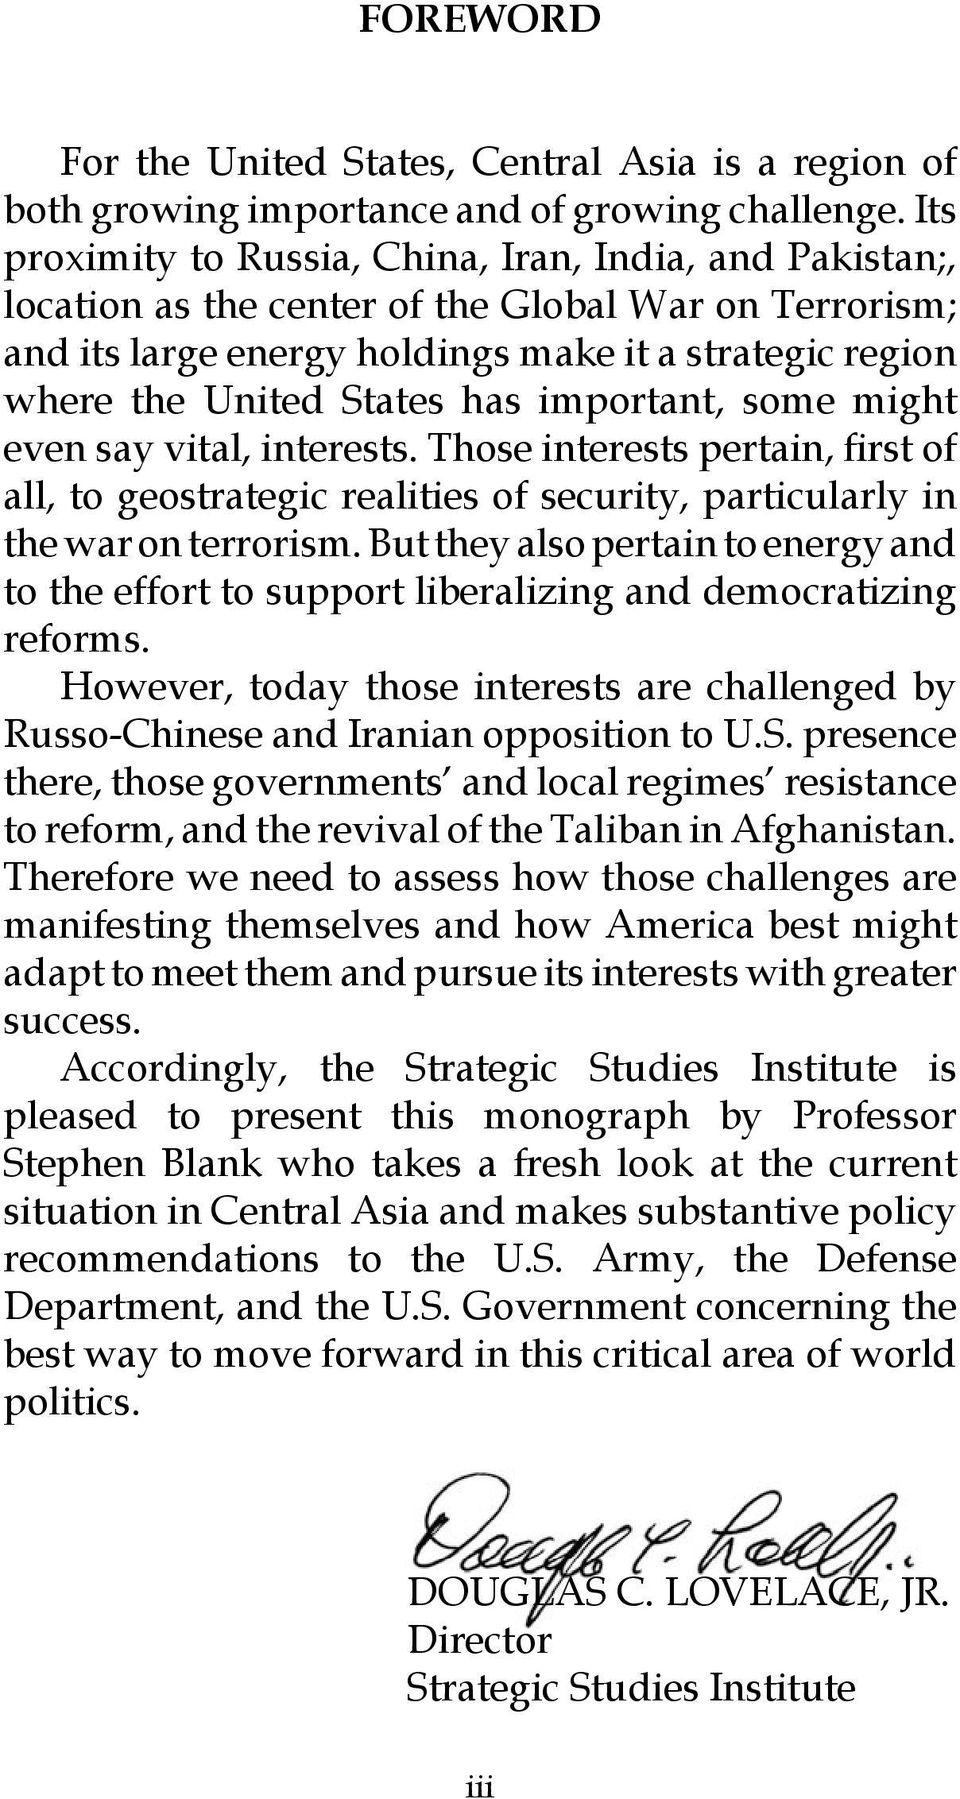 important, some might even say vital, interests. Those interests pertain, first of all, to geostrategic realities of security, particularly in the war on terrorism.